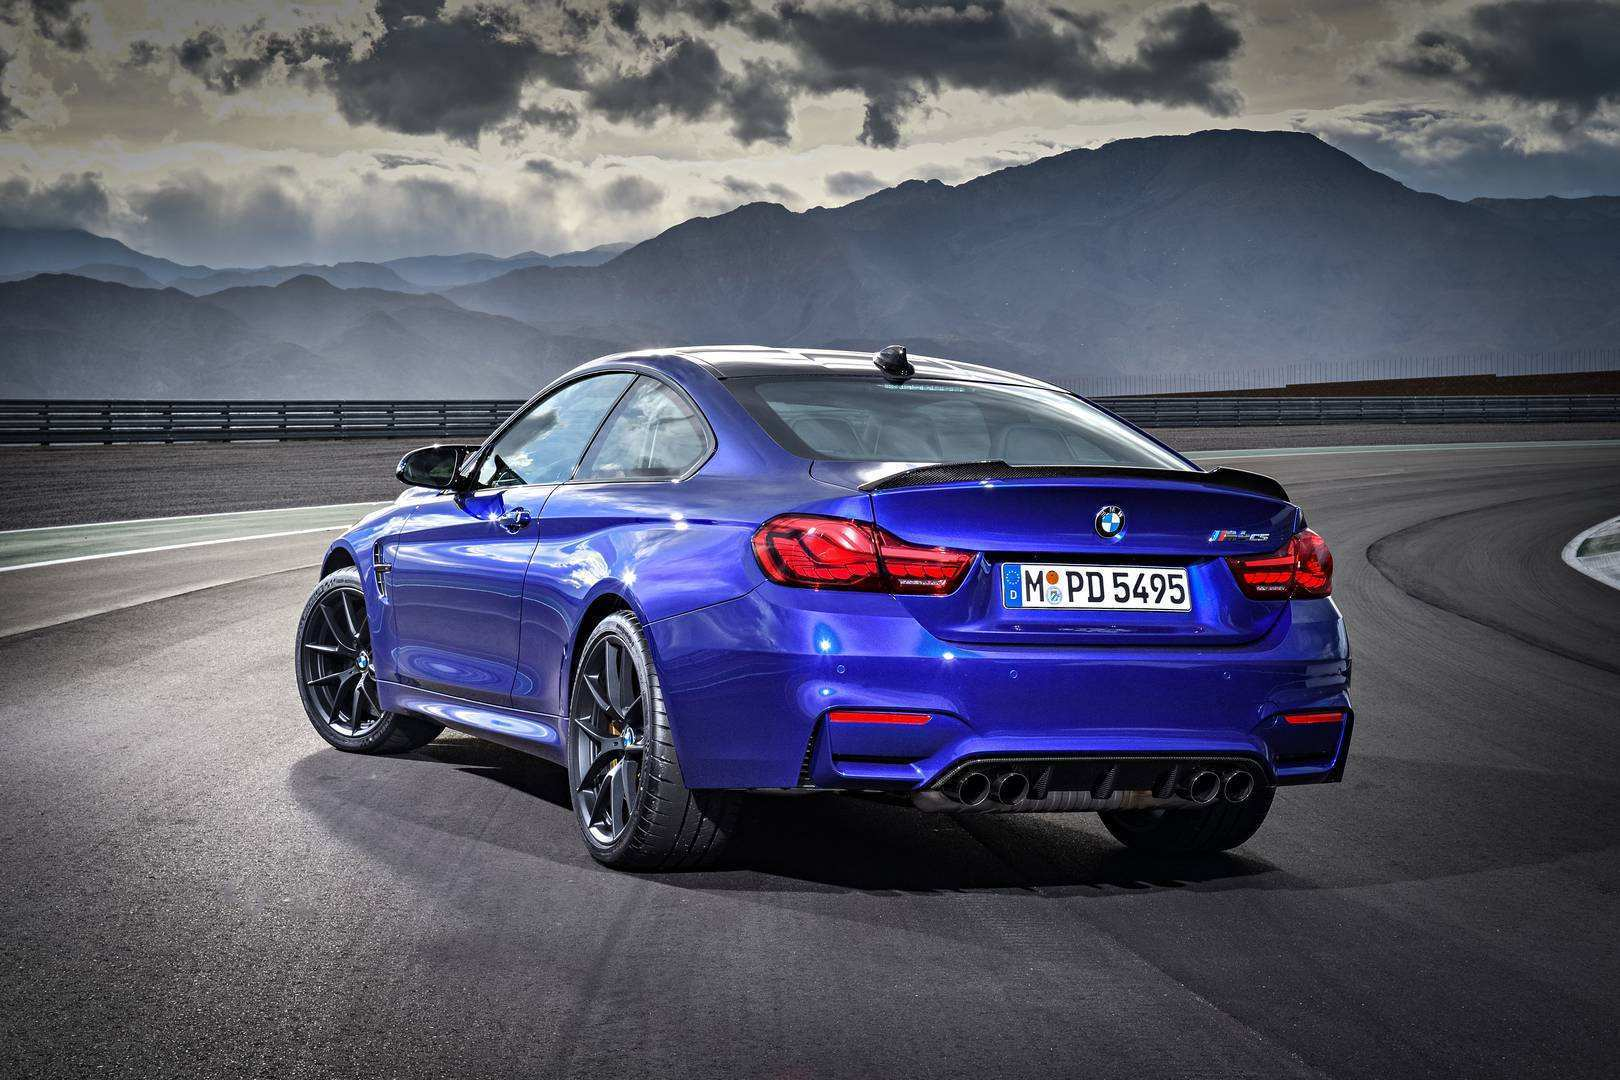 44 The Best 2020 BMW M4 Gts Concept